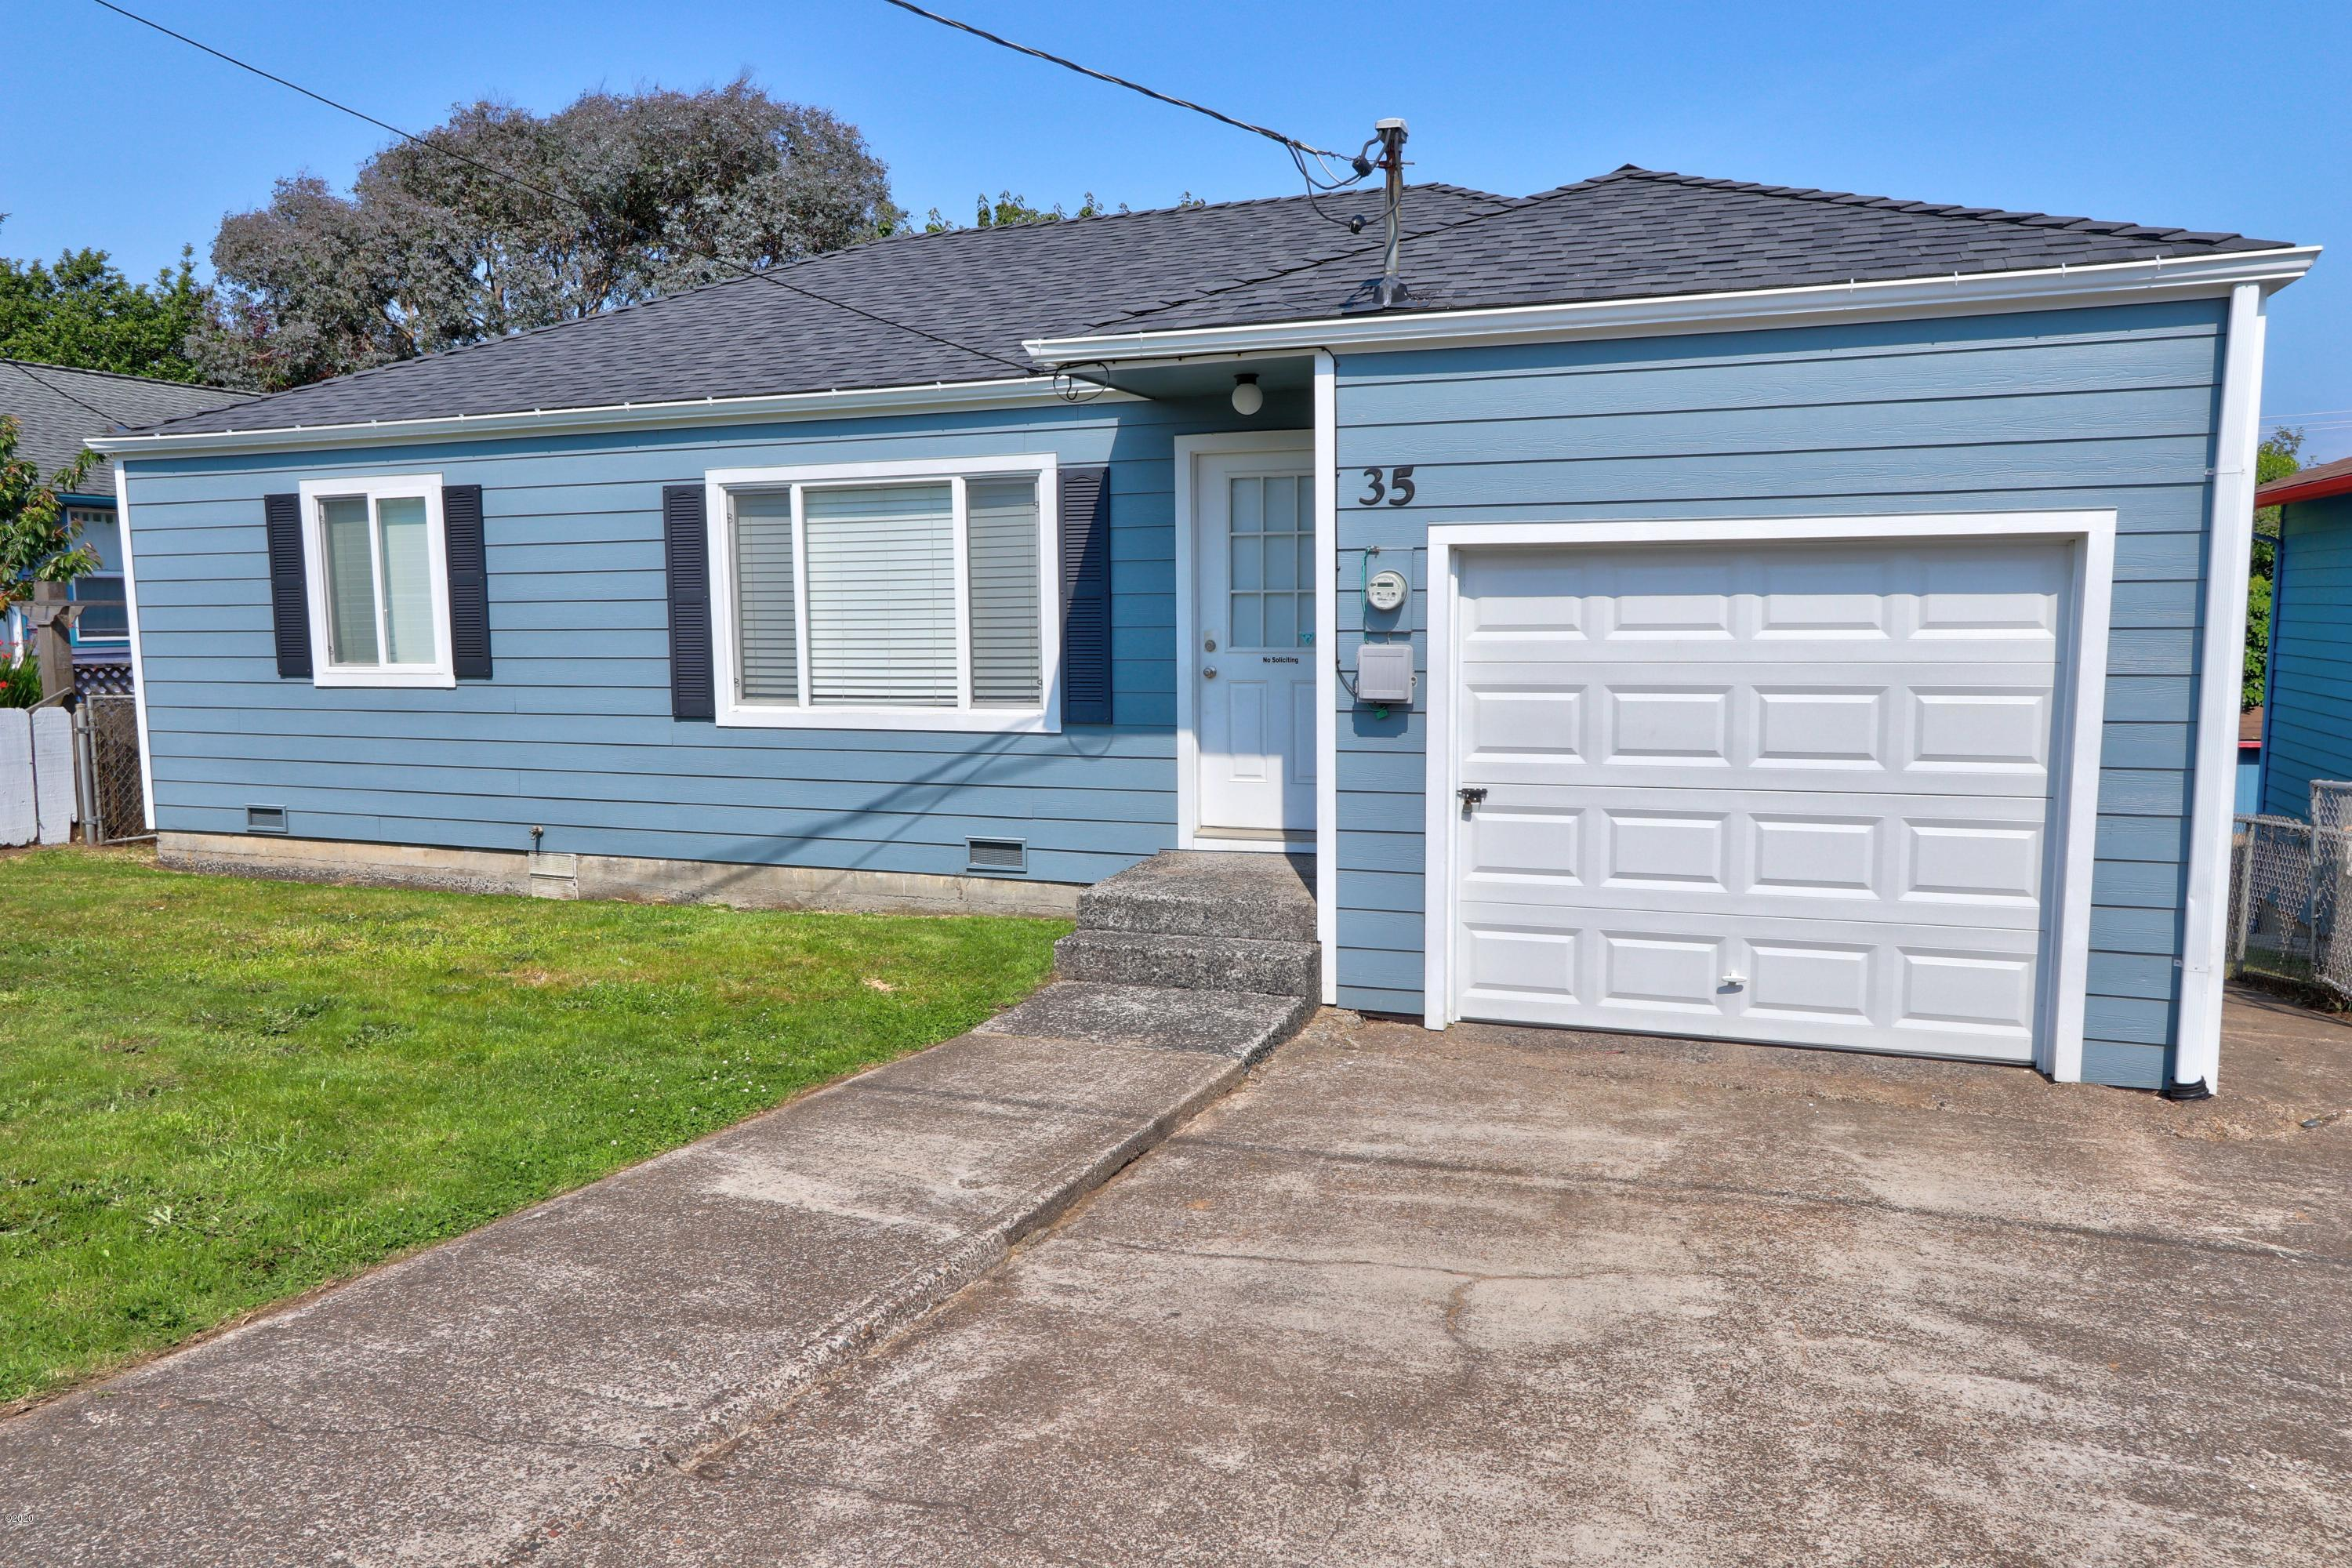 35 SW Cottage St, Newport, OR 97365 - Front of House